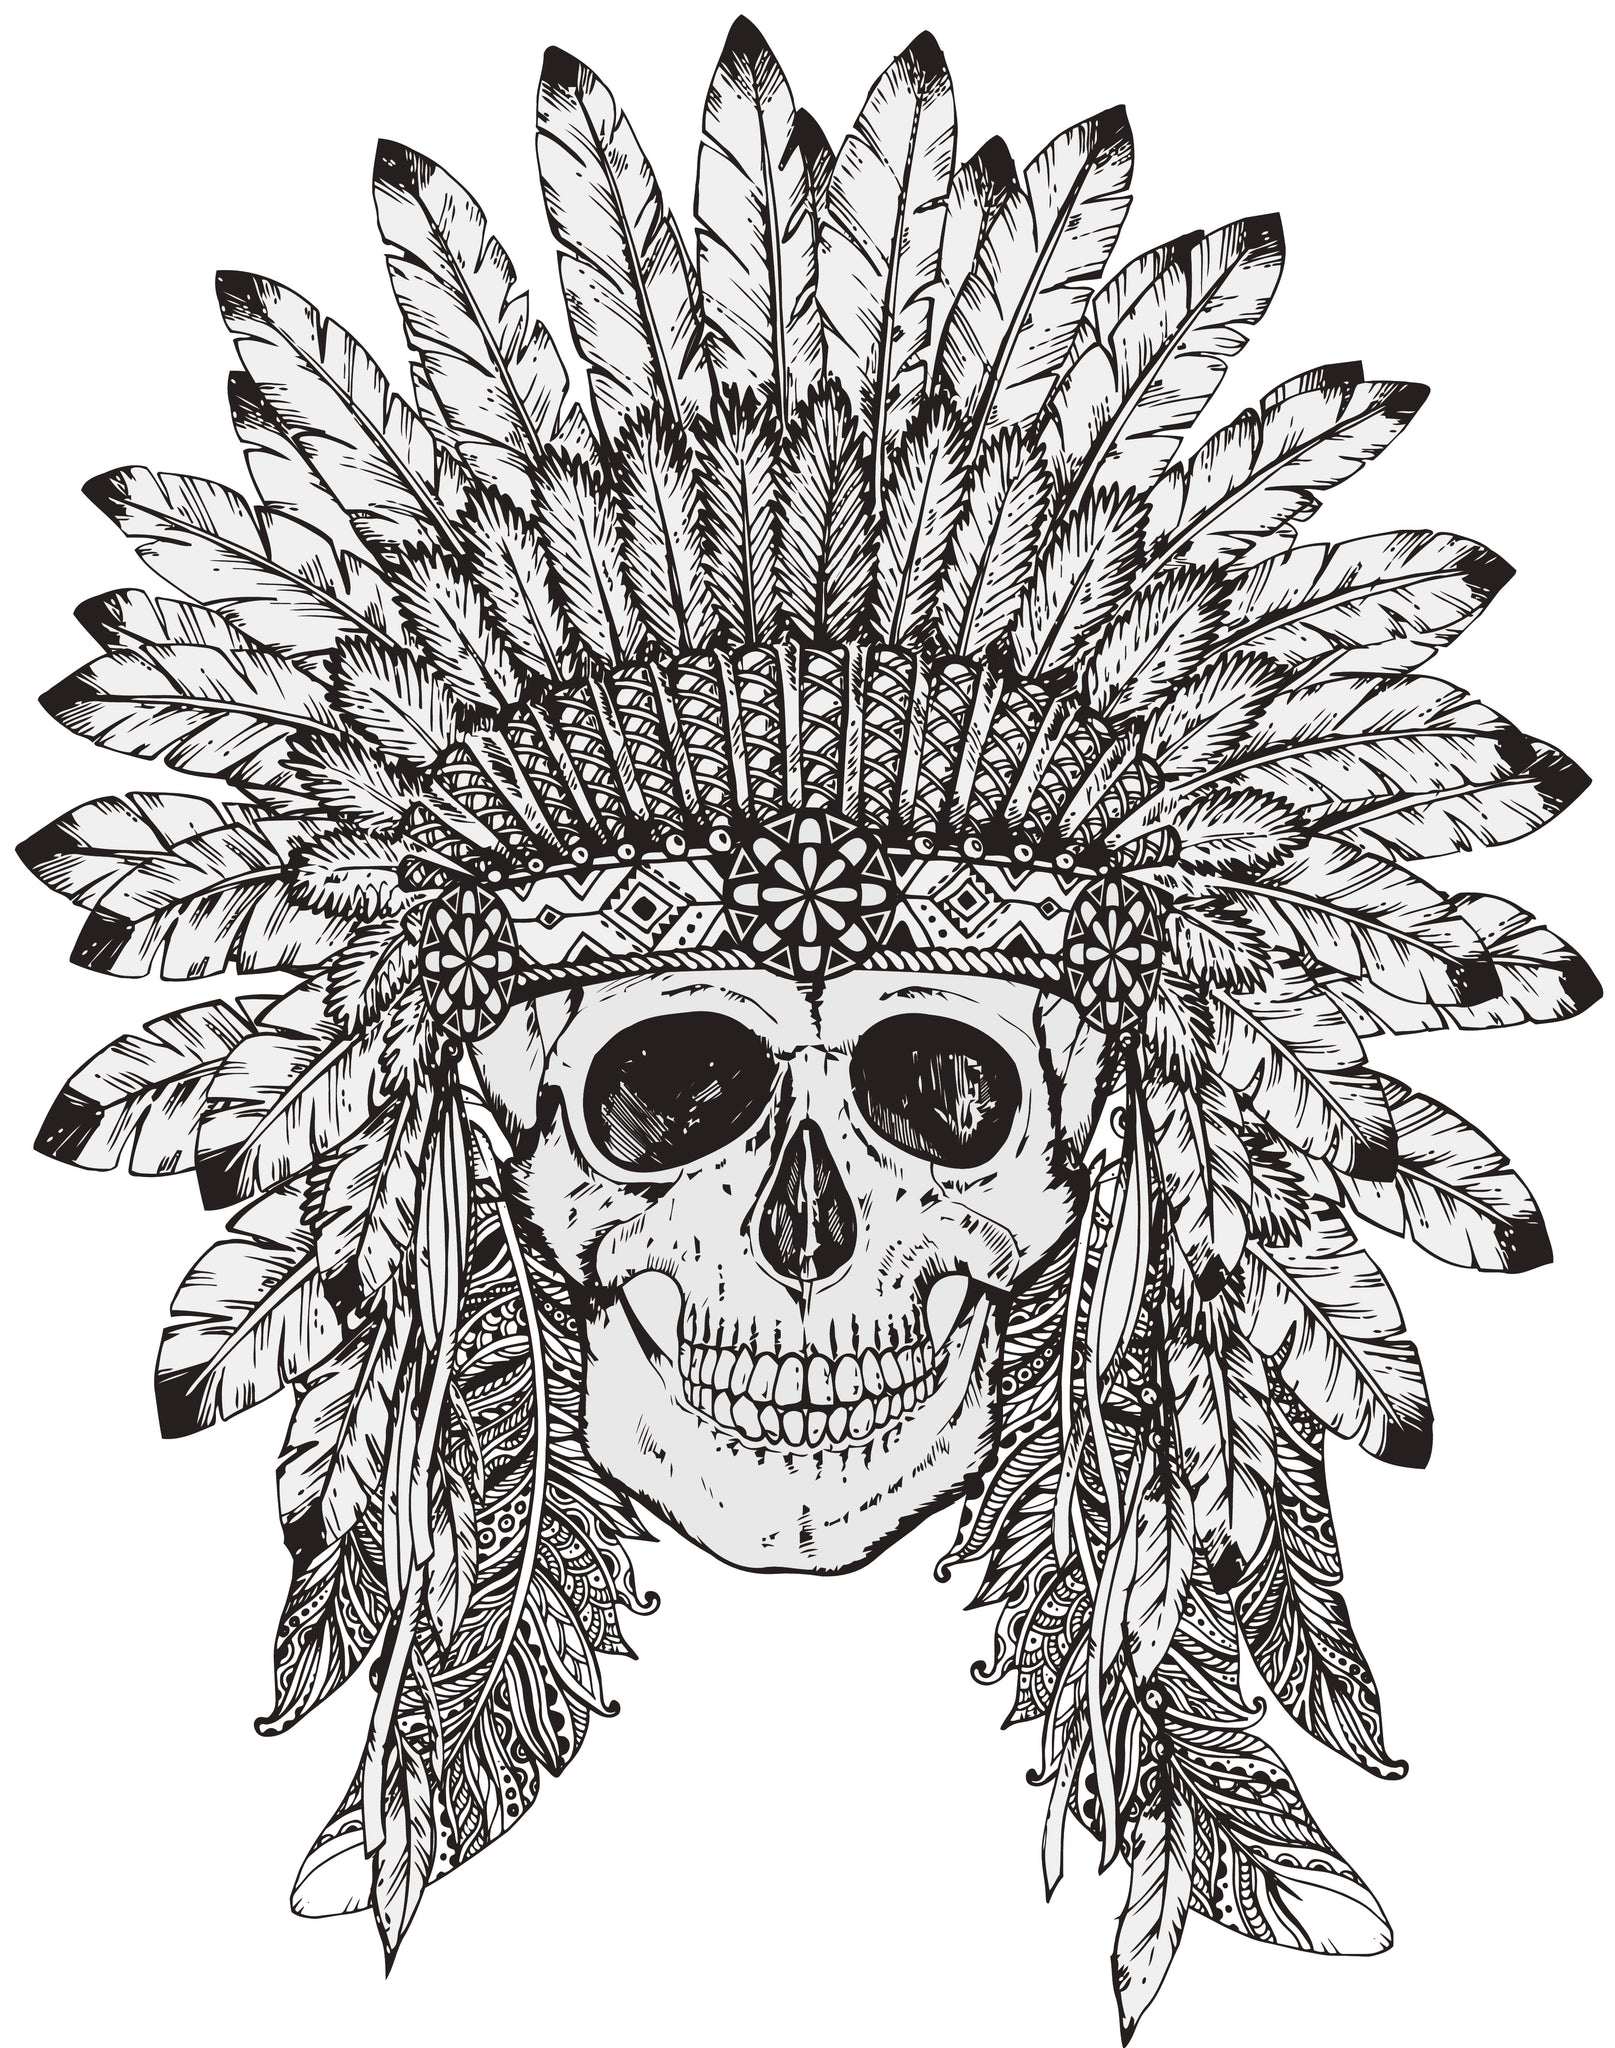 Skull with Elaborate Feathered Headdress Vinyl Decal Sticker